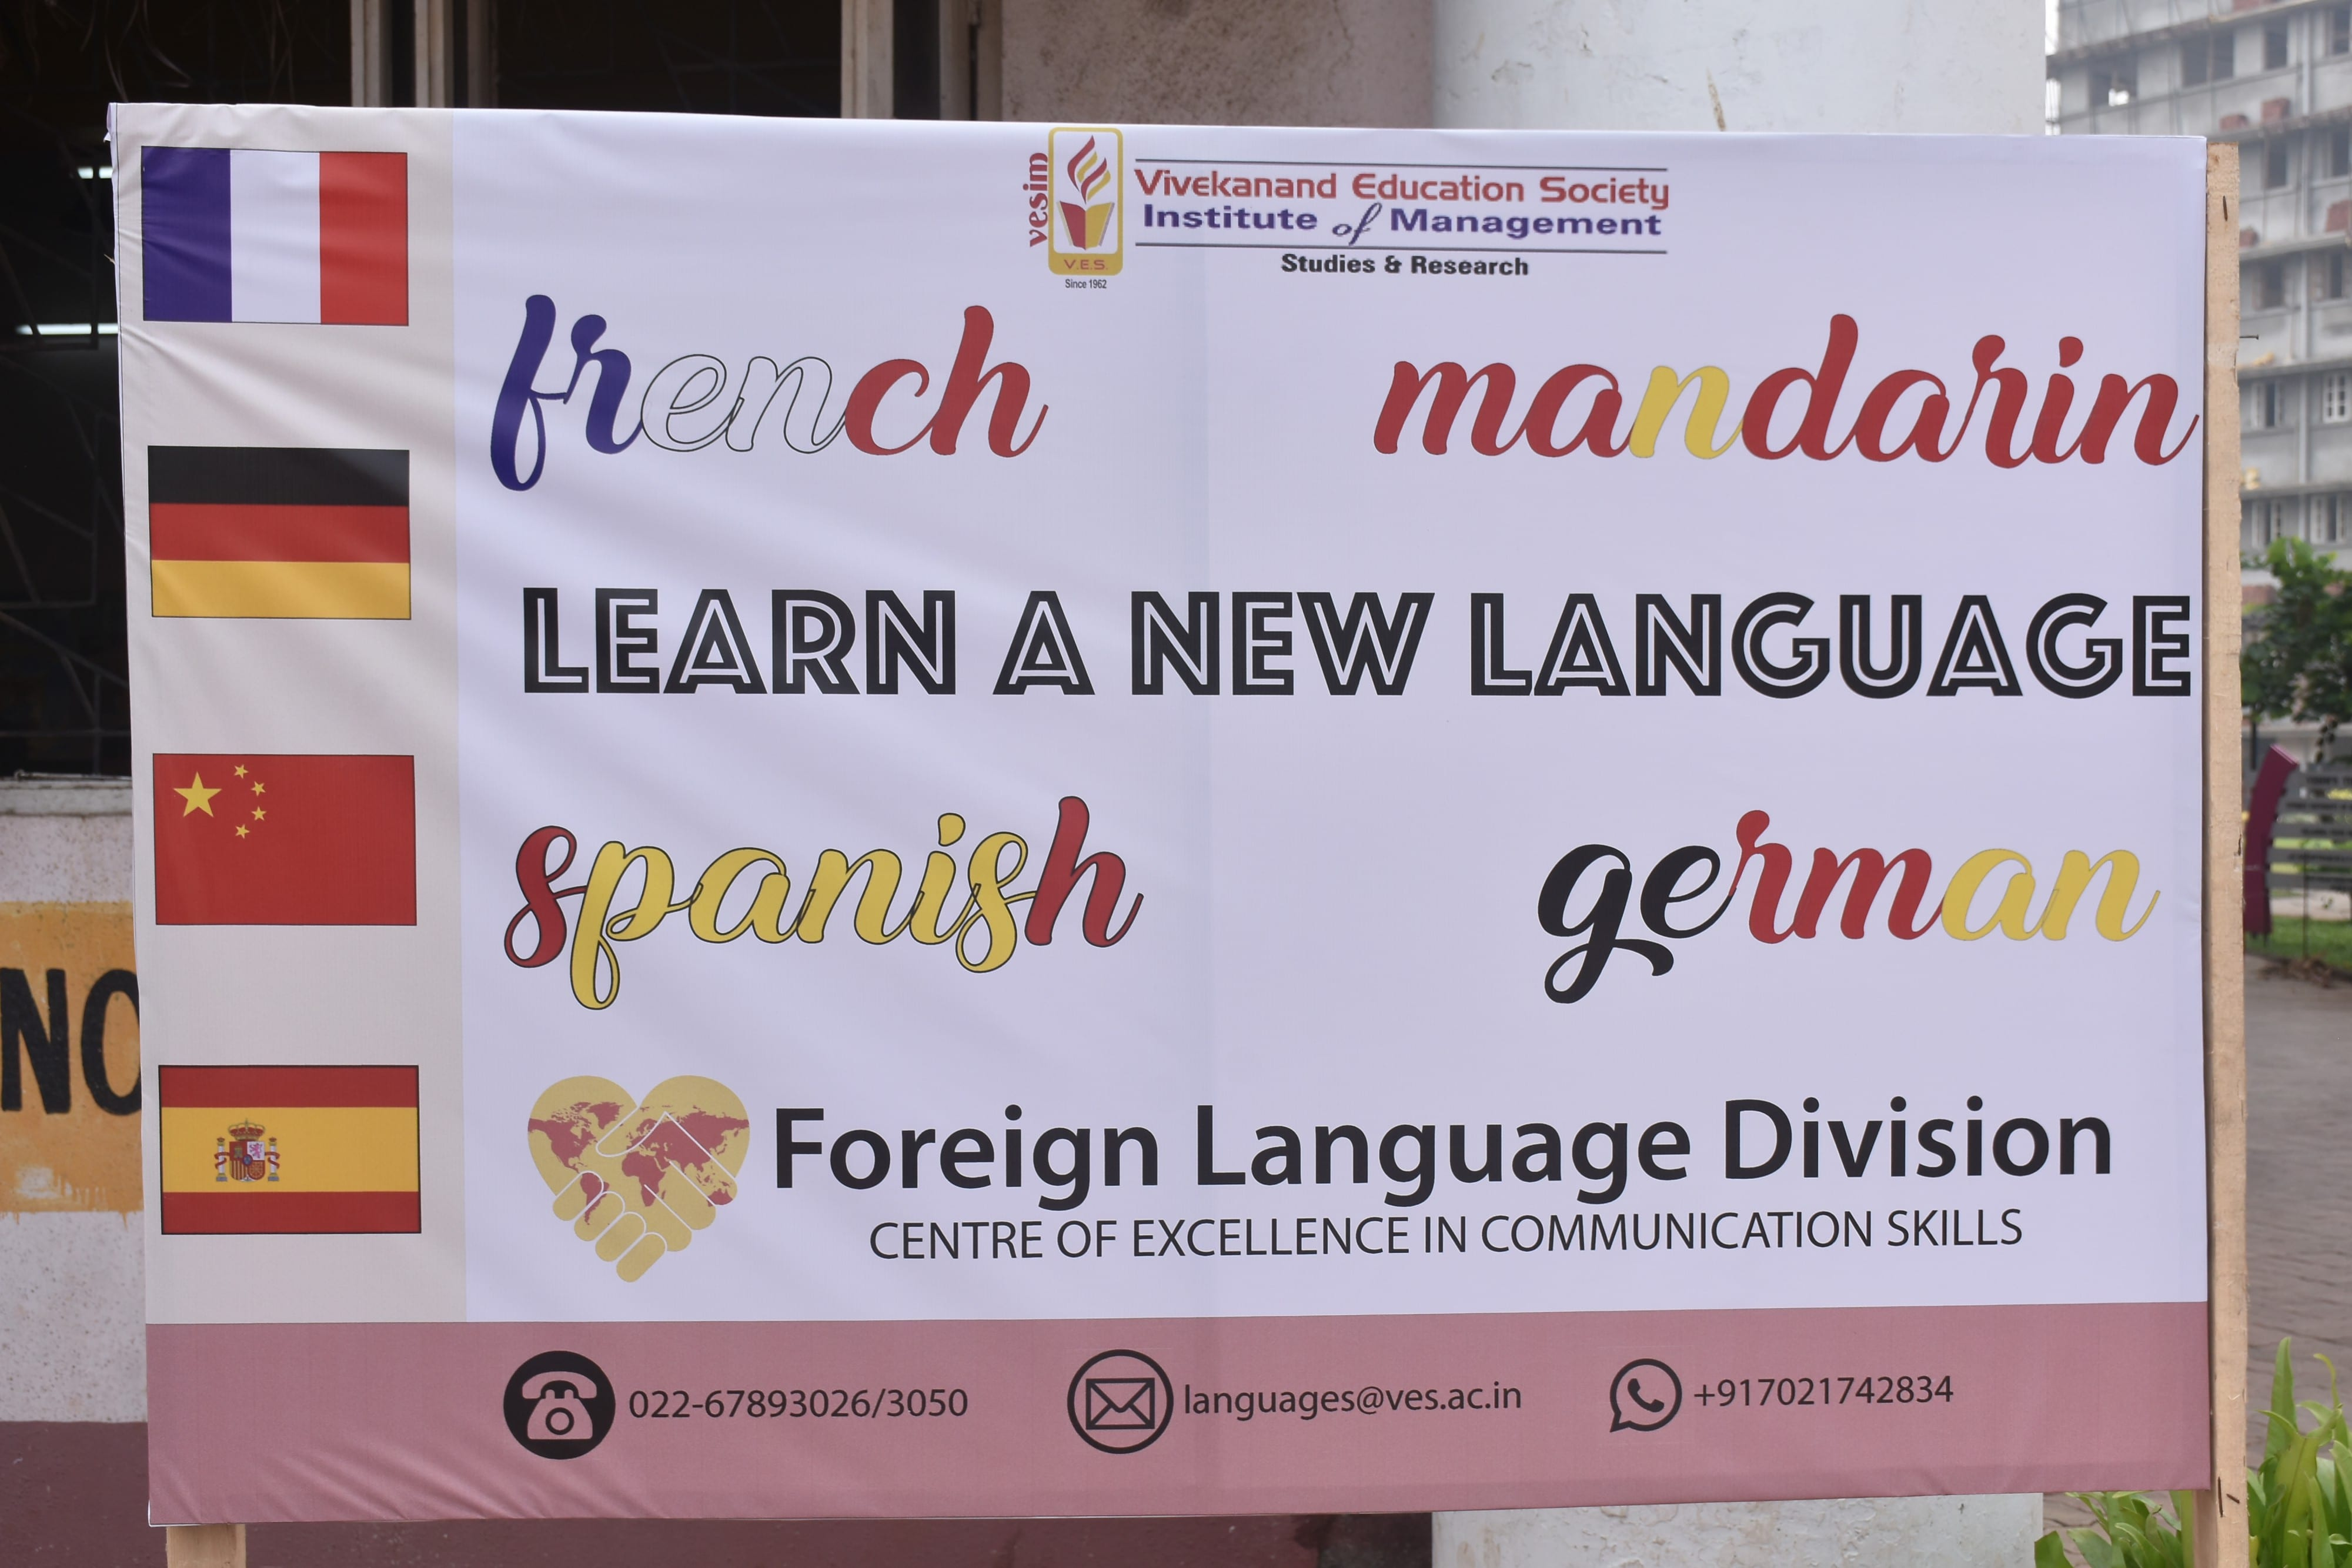 VESIM Mumbai launches Foreign Language Division - Mandarin, French, German & Spanish to be taught